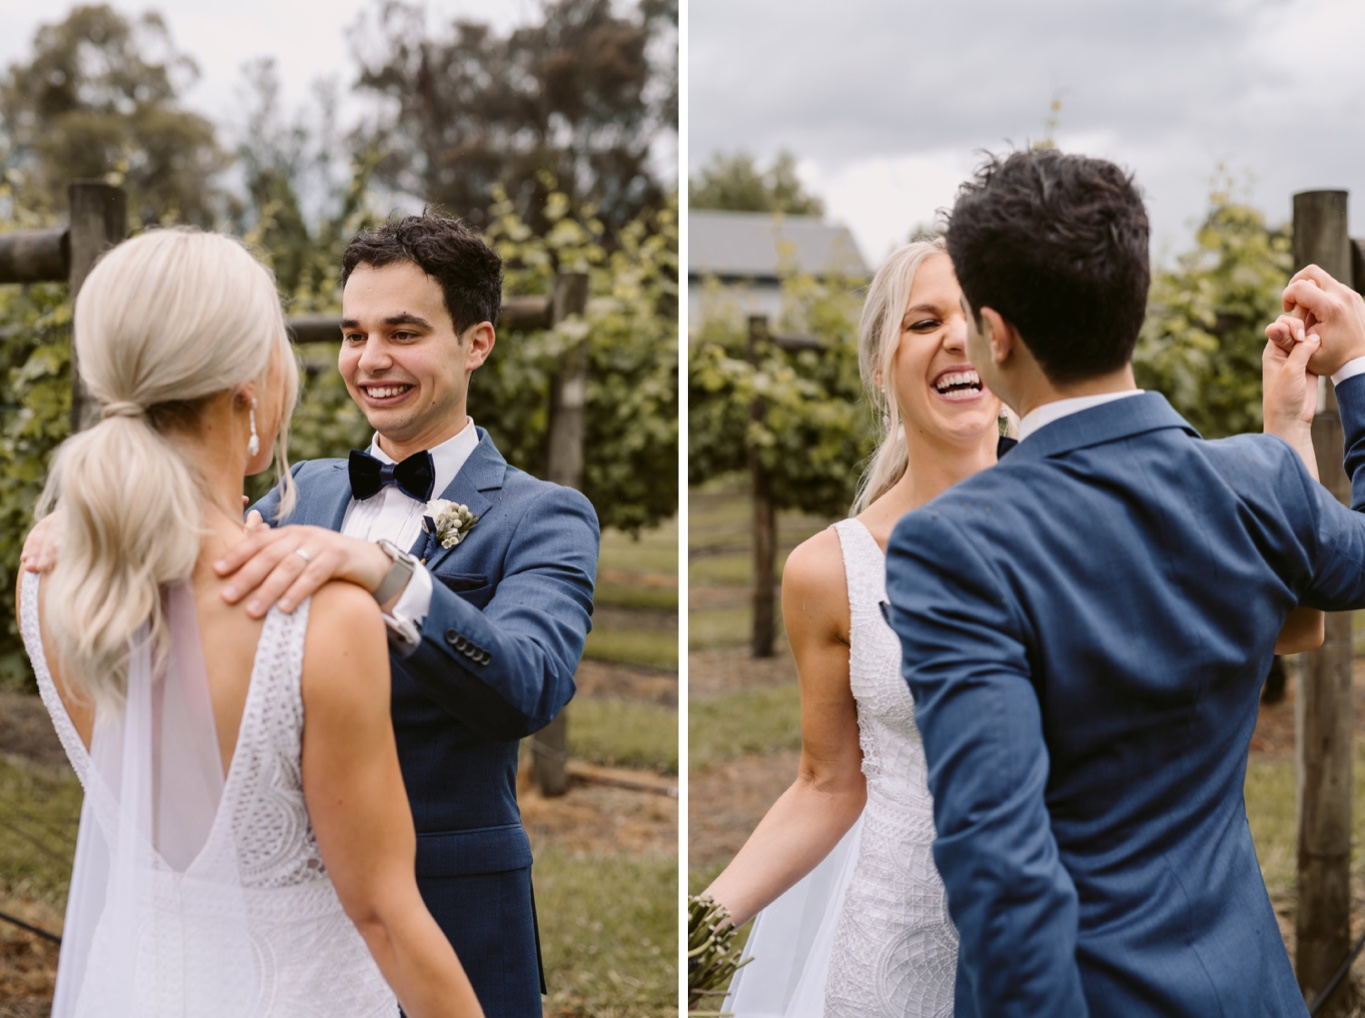 Immerse Yarra Valley Winery Wedding Photography75.jpg